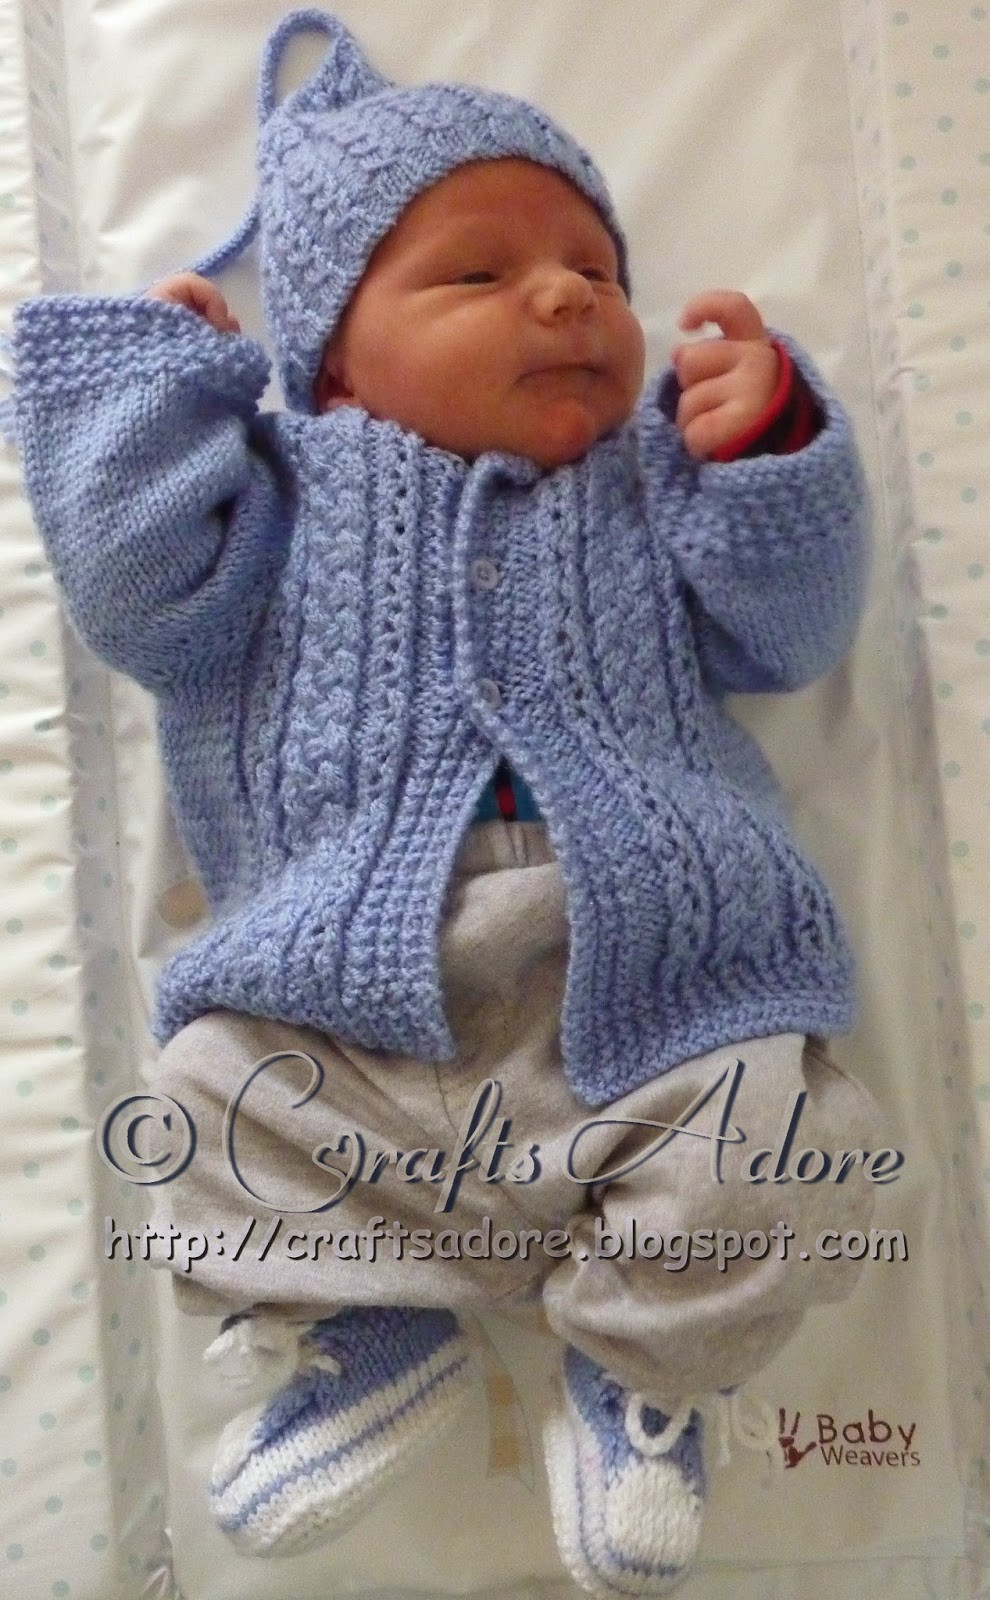 """Elegant Craftsadore """"handsome Cables"""" Knitted Baby Boy Cardigan Free Cardigan Knitting Patterns Of Top 49 Images Free Cardigan Knitting Patterns"""